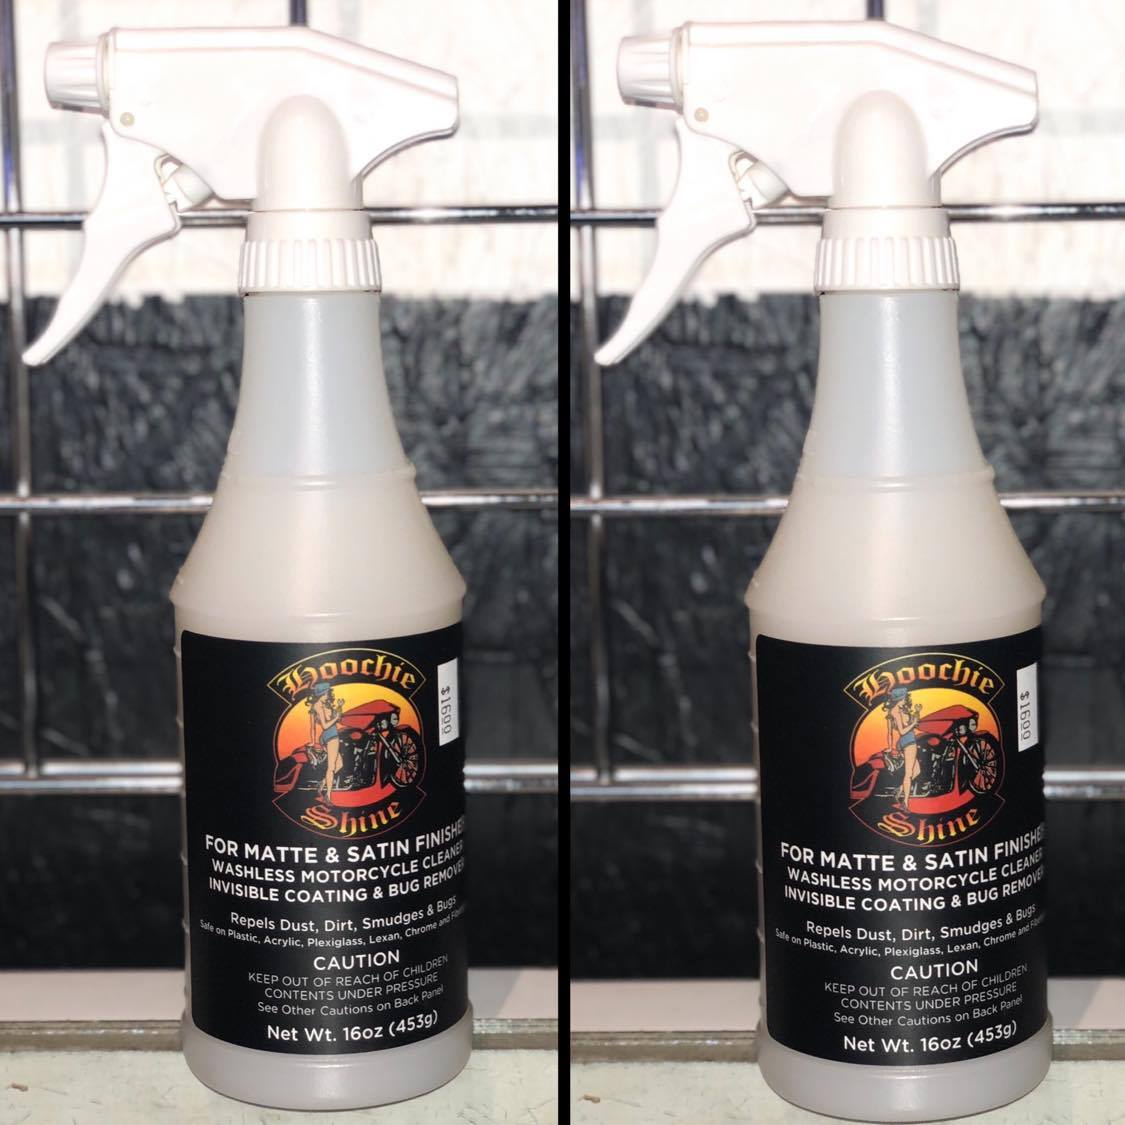 Hoochie Shine Matte & Satin Finishes 16 Oz Spray Bottle-(2 for $30.00)